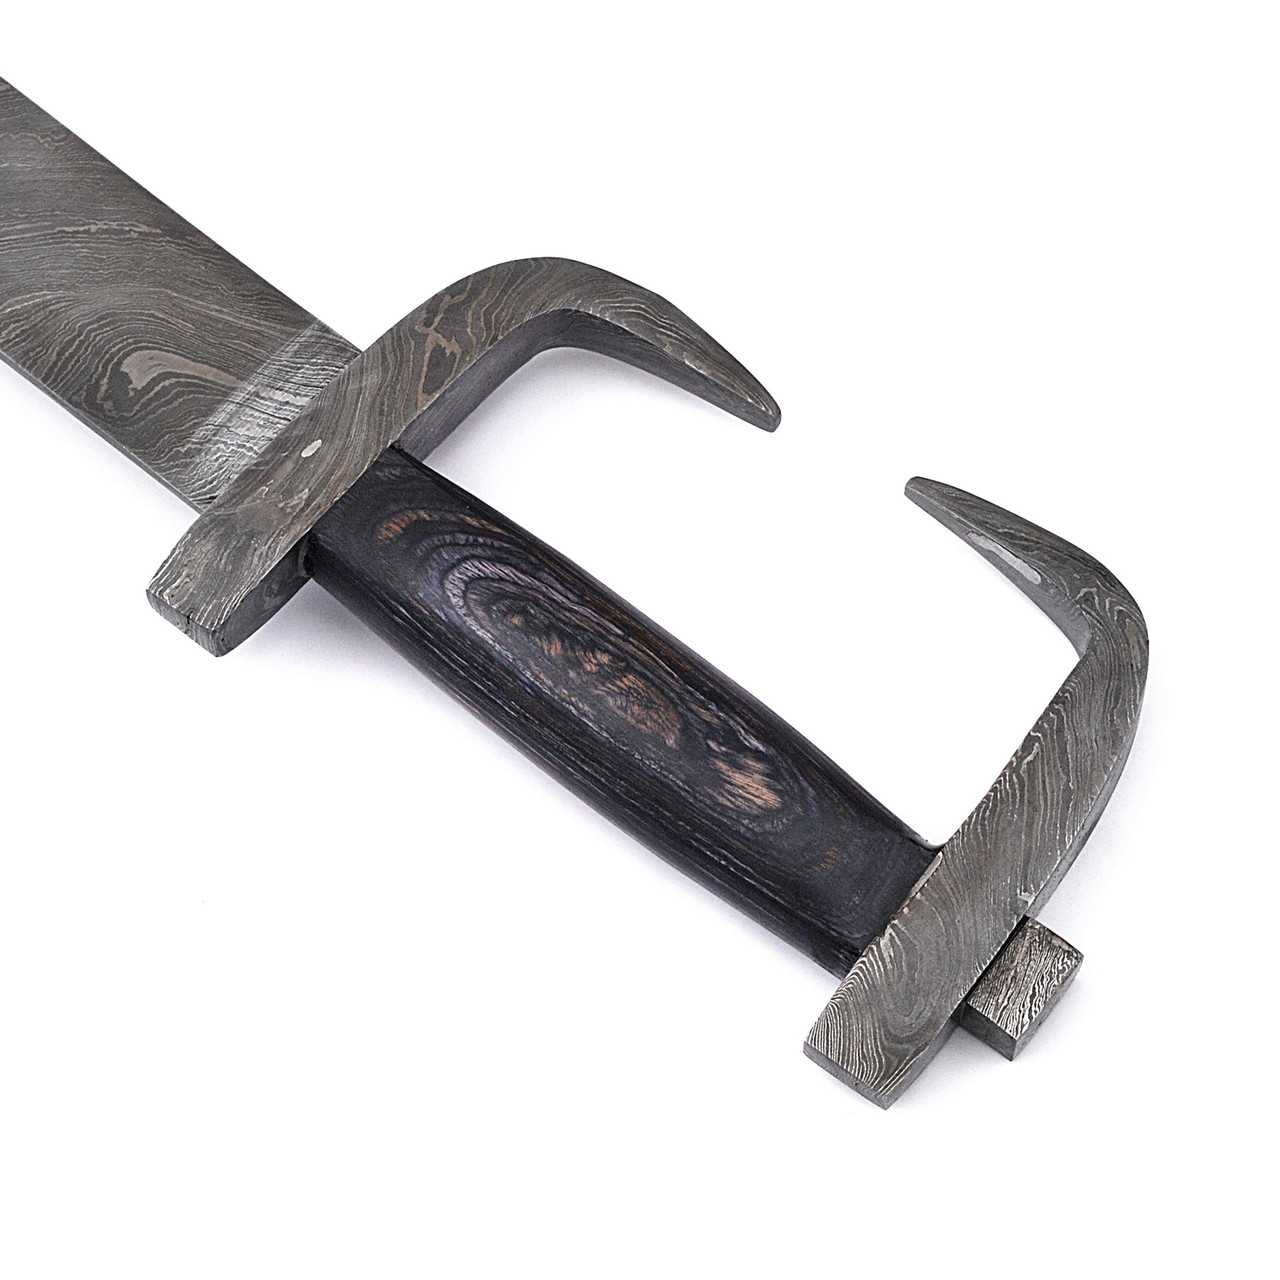 The King of Spartan's Rage Damascus Steel sword